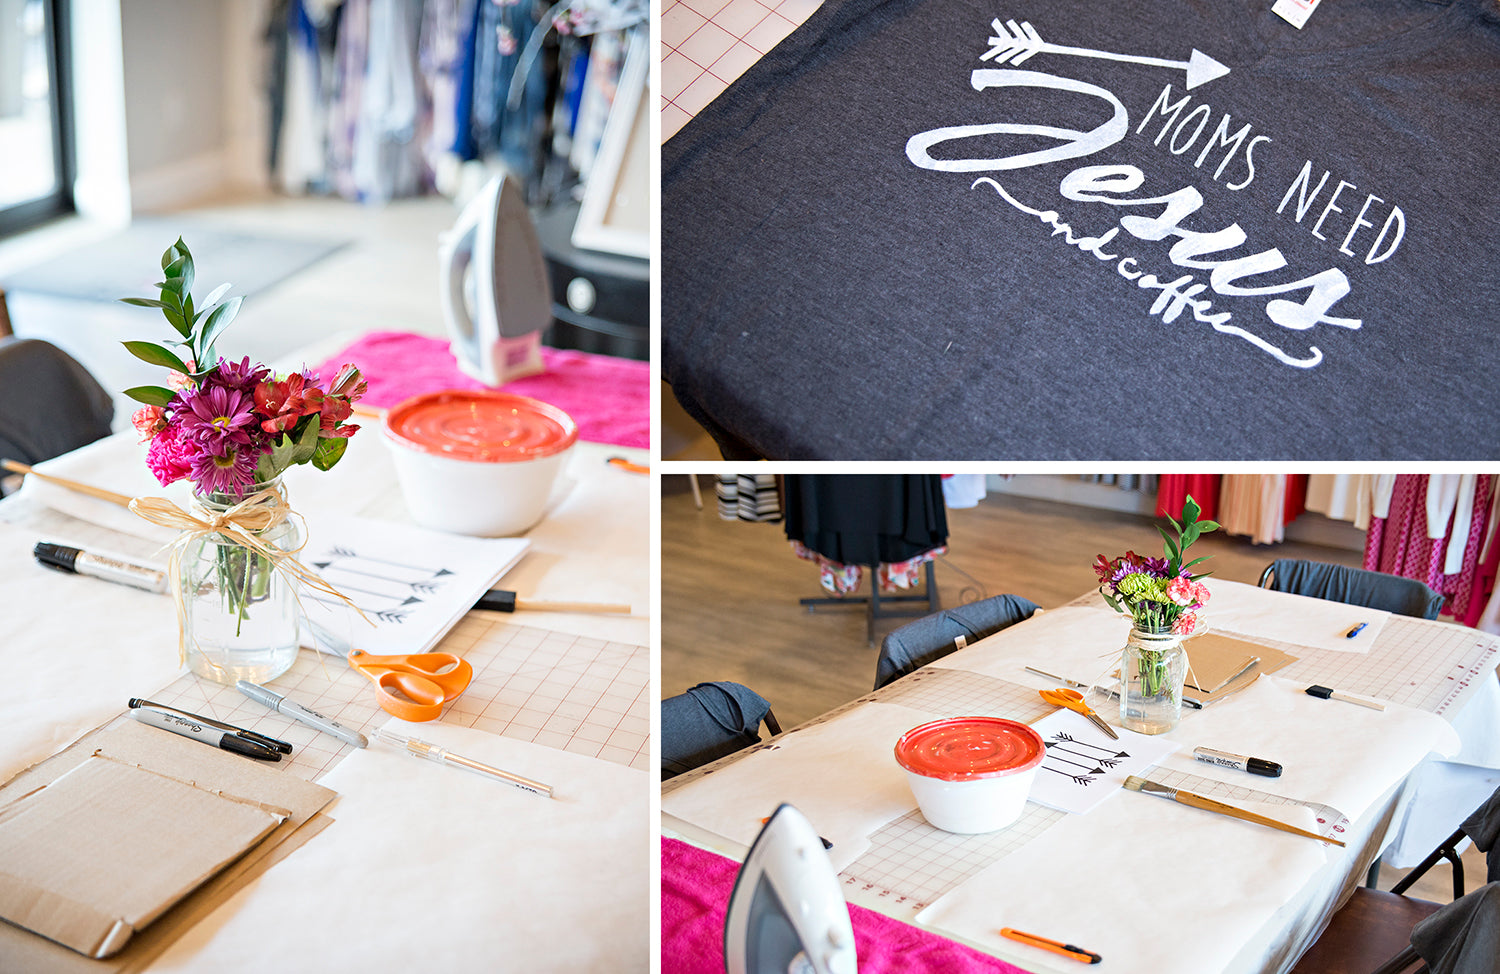 DIY Thursdays projects at Eccentrics Boutique. DIY Shirt Silkscreen Stencil